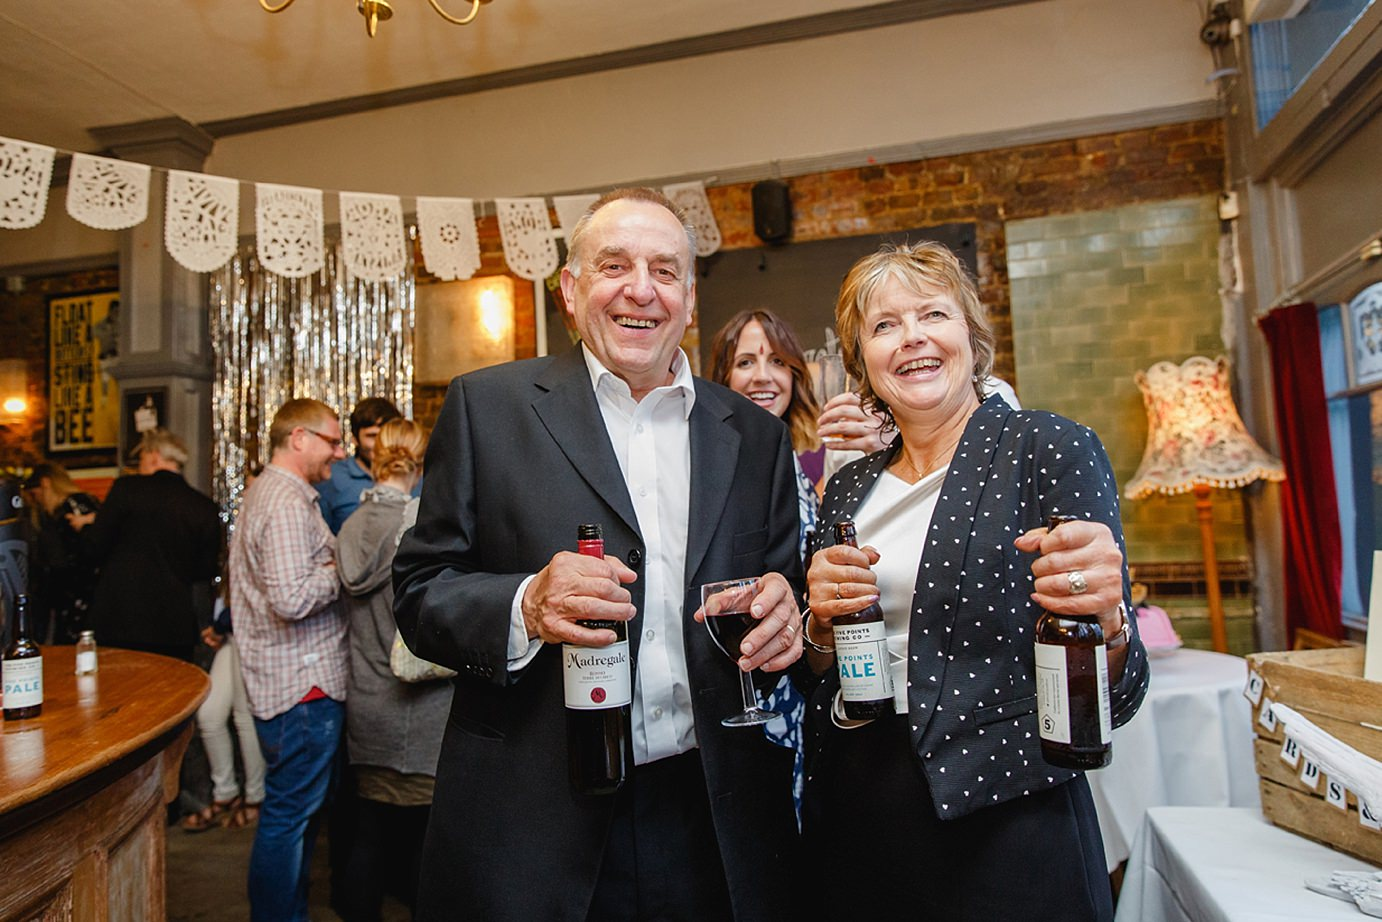 Londesborough pub wedding photography guests with beer bottles